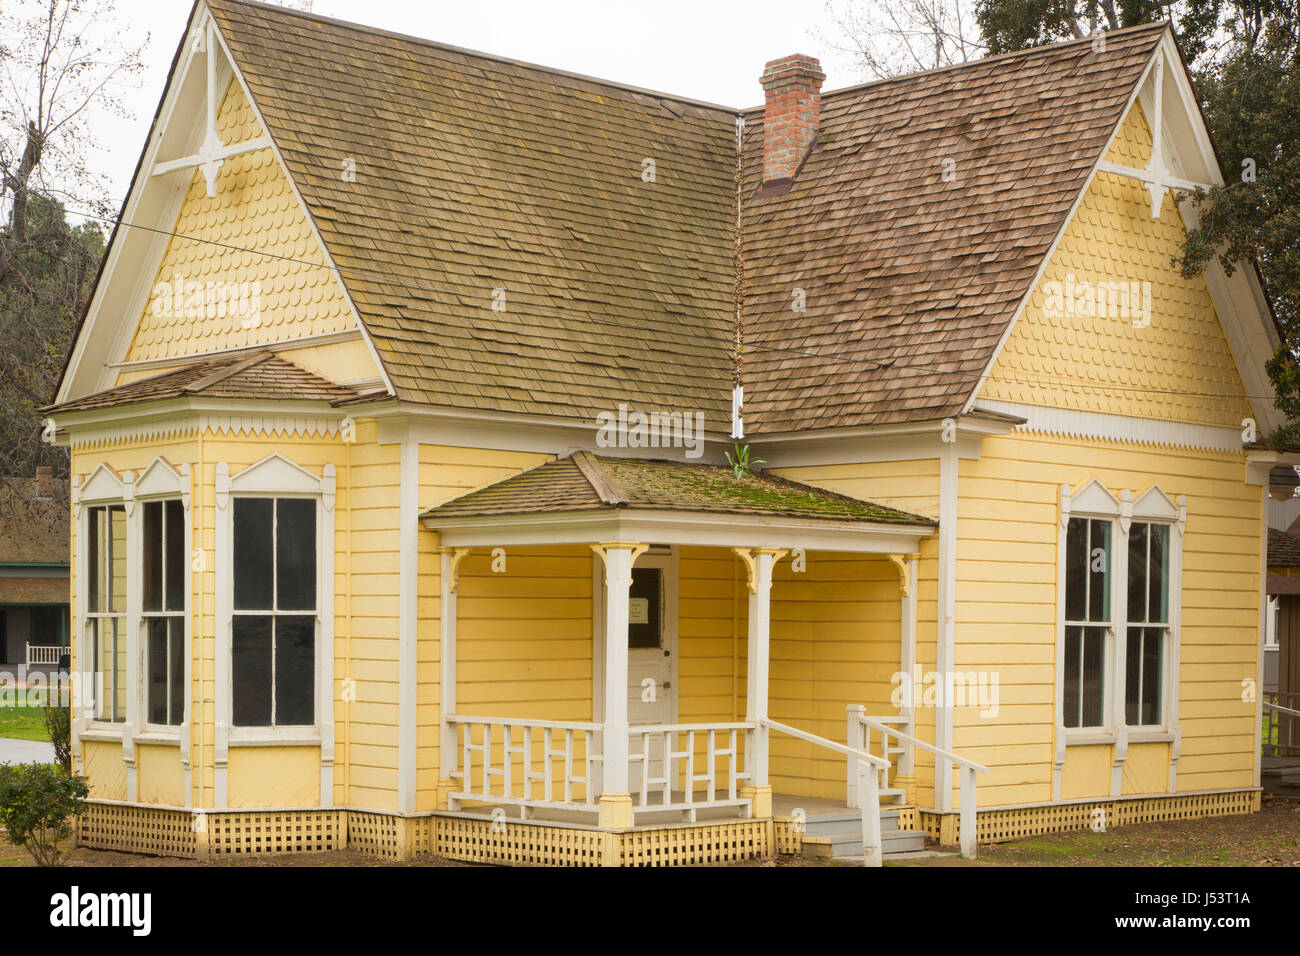 Metcalf House, Kern Pioneer Village, Bakersfield, California - Stock Image